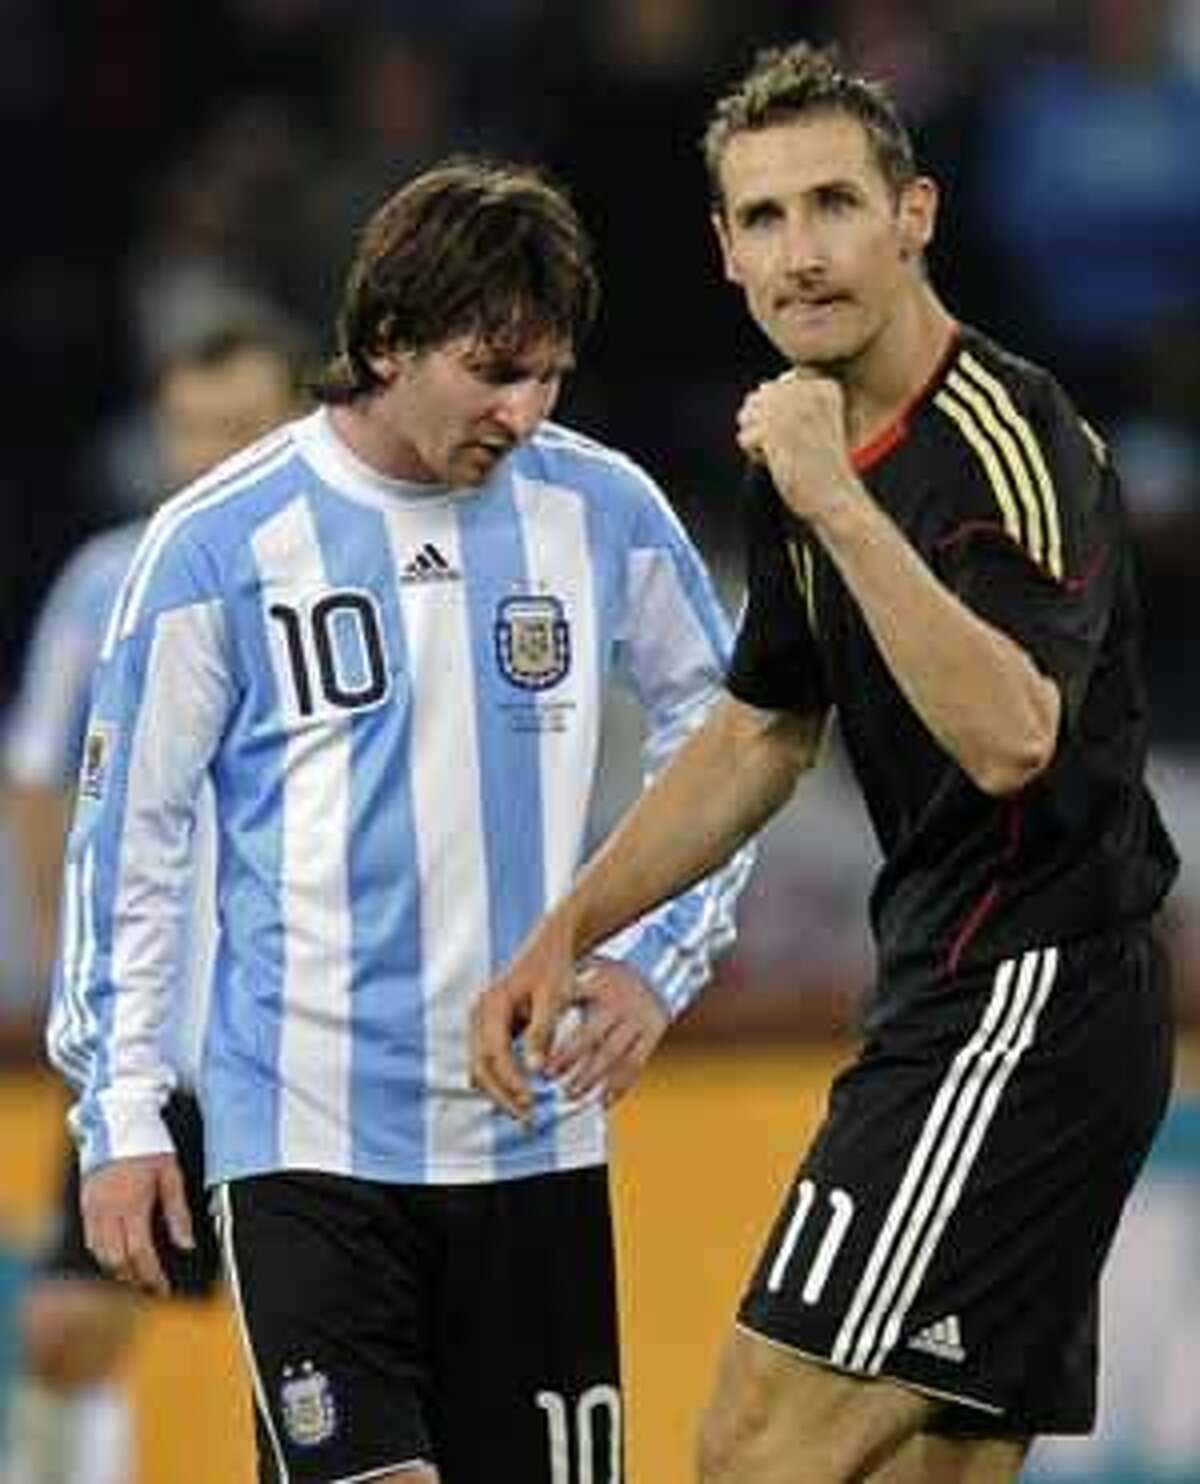 Germany's Miroslav Klose, right, walks past Argentina's Lionel Messi as he celebrates after scoring his team's fourth goal during the World Cup quarterfinal soccer match between Argentina and Germany at the Green Point stadium in Cape Town, South Africa, Saturday, July 3, 2010. Germany won 4-0. (AP Photo/Martin Meissner)